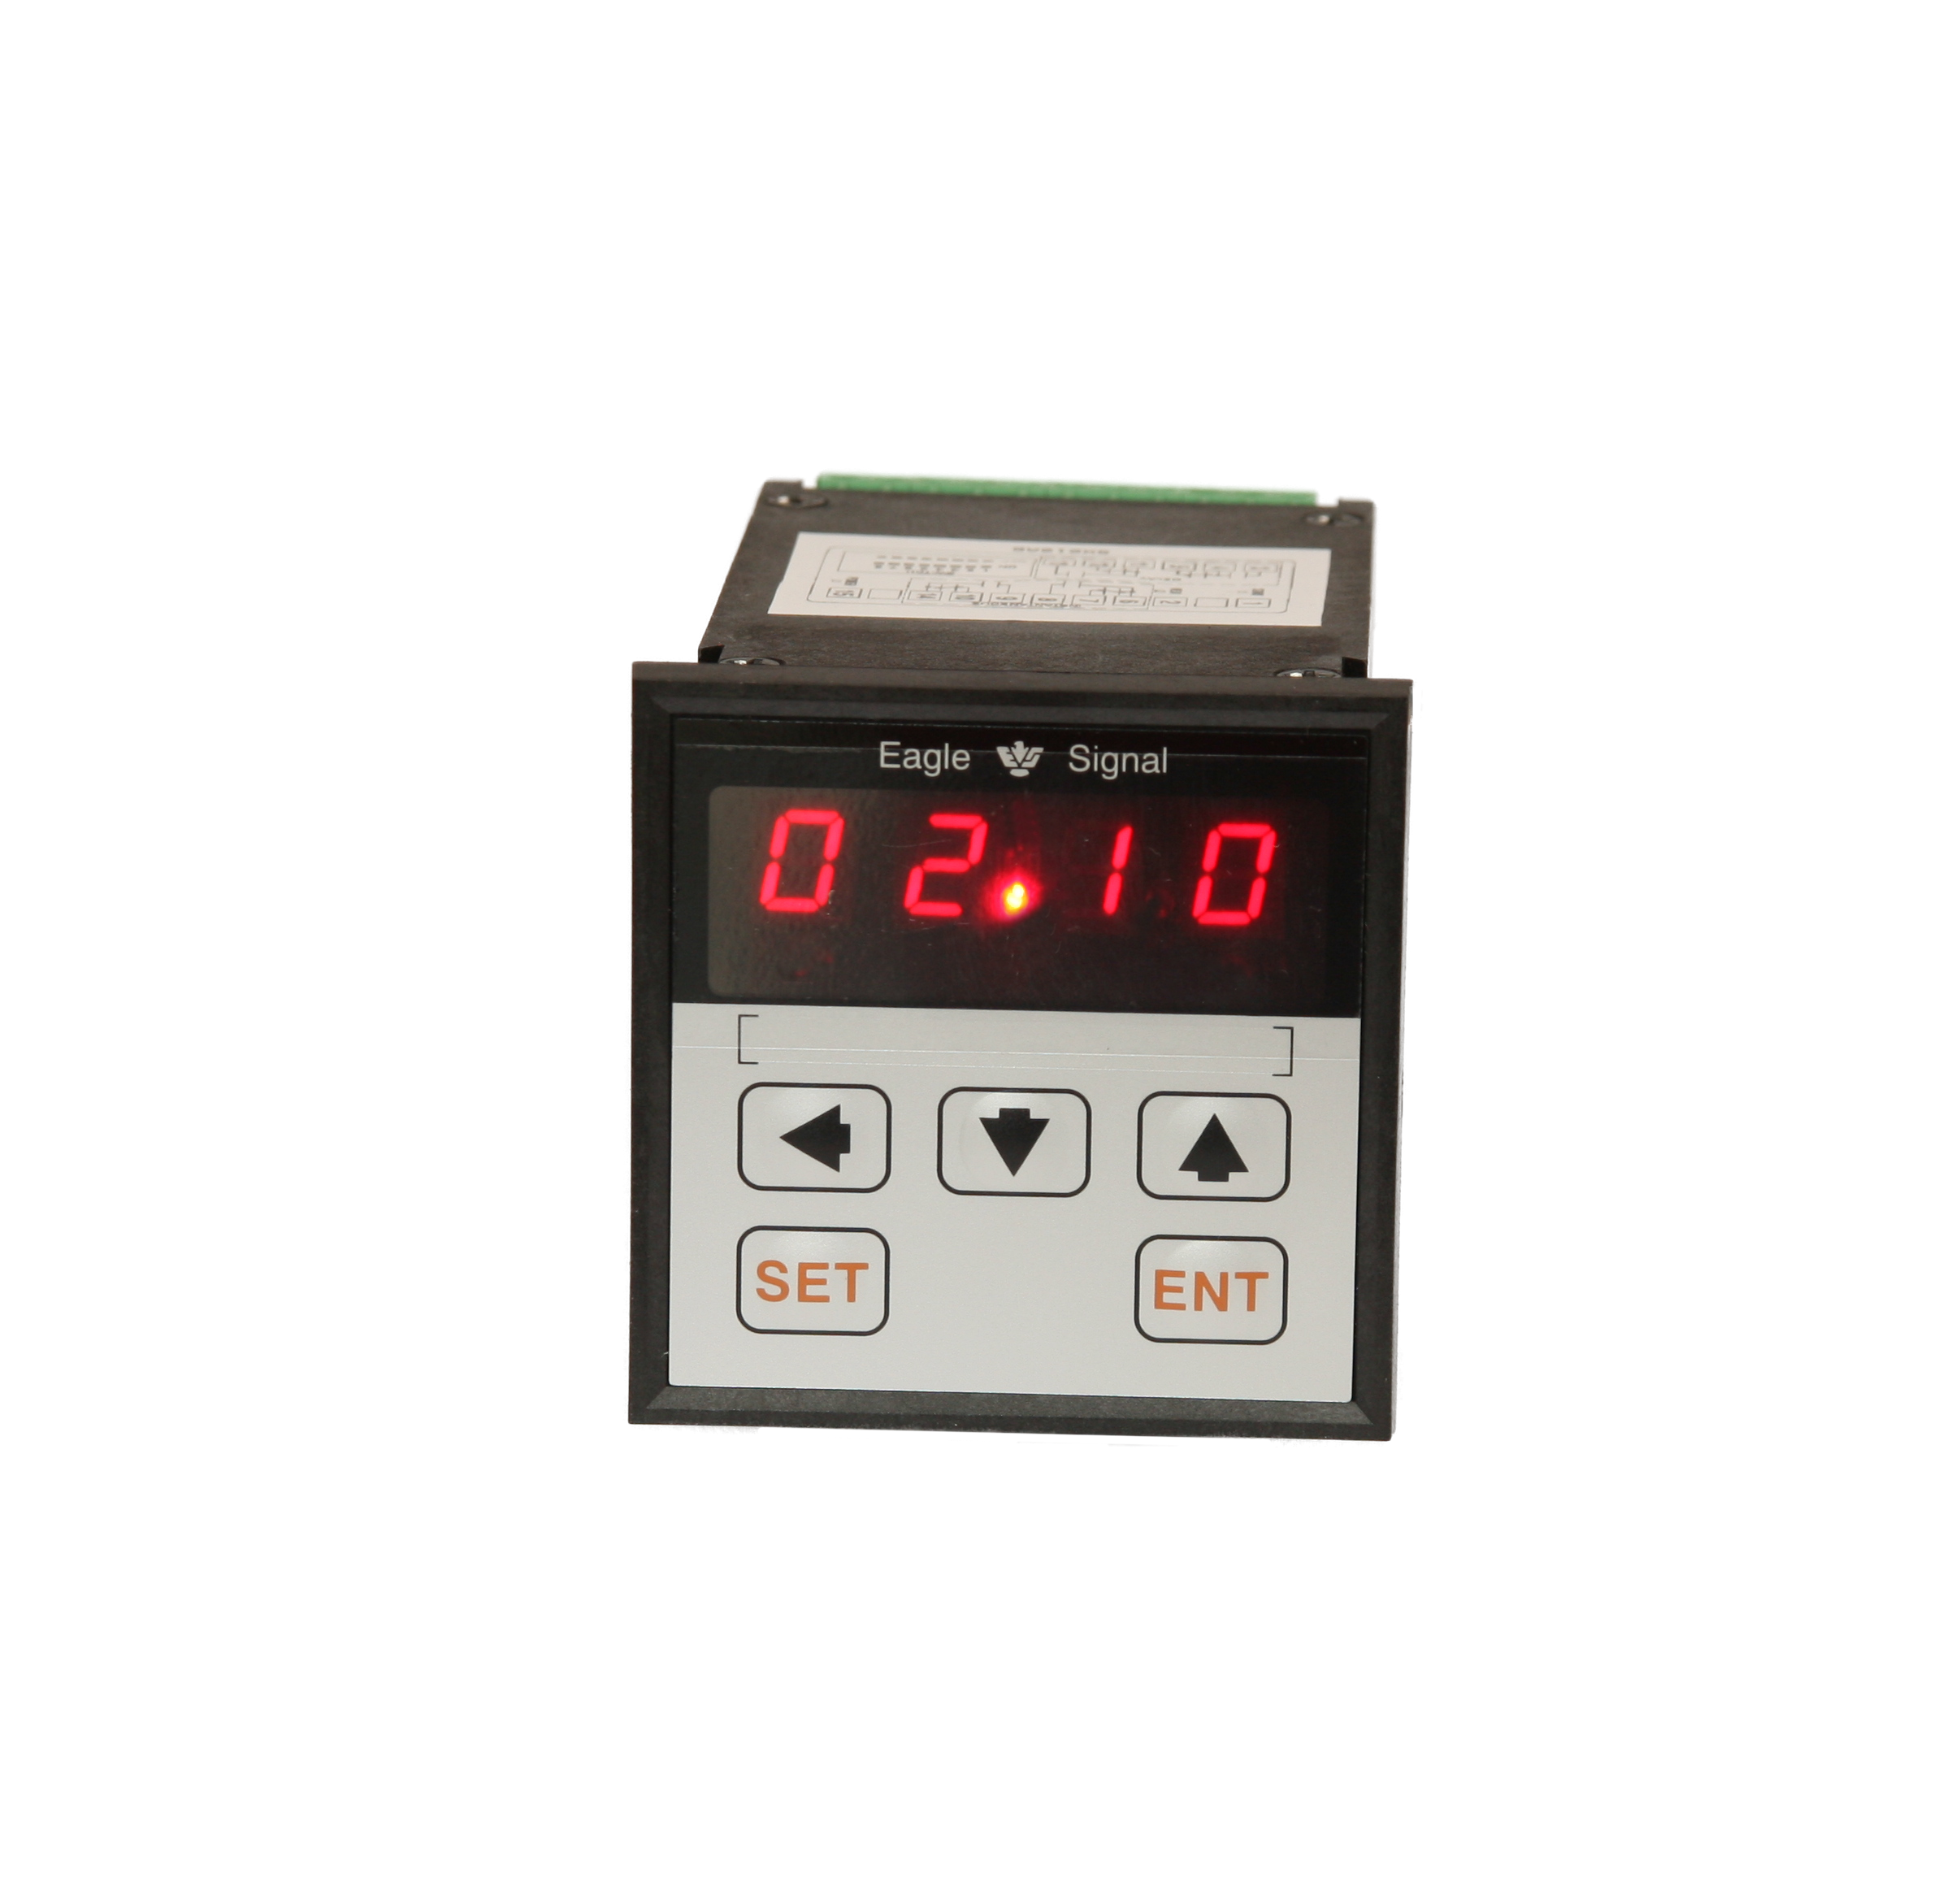 Transparent timer. Eagle signal electronic timers